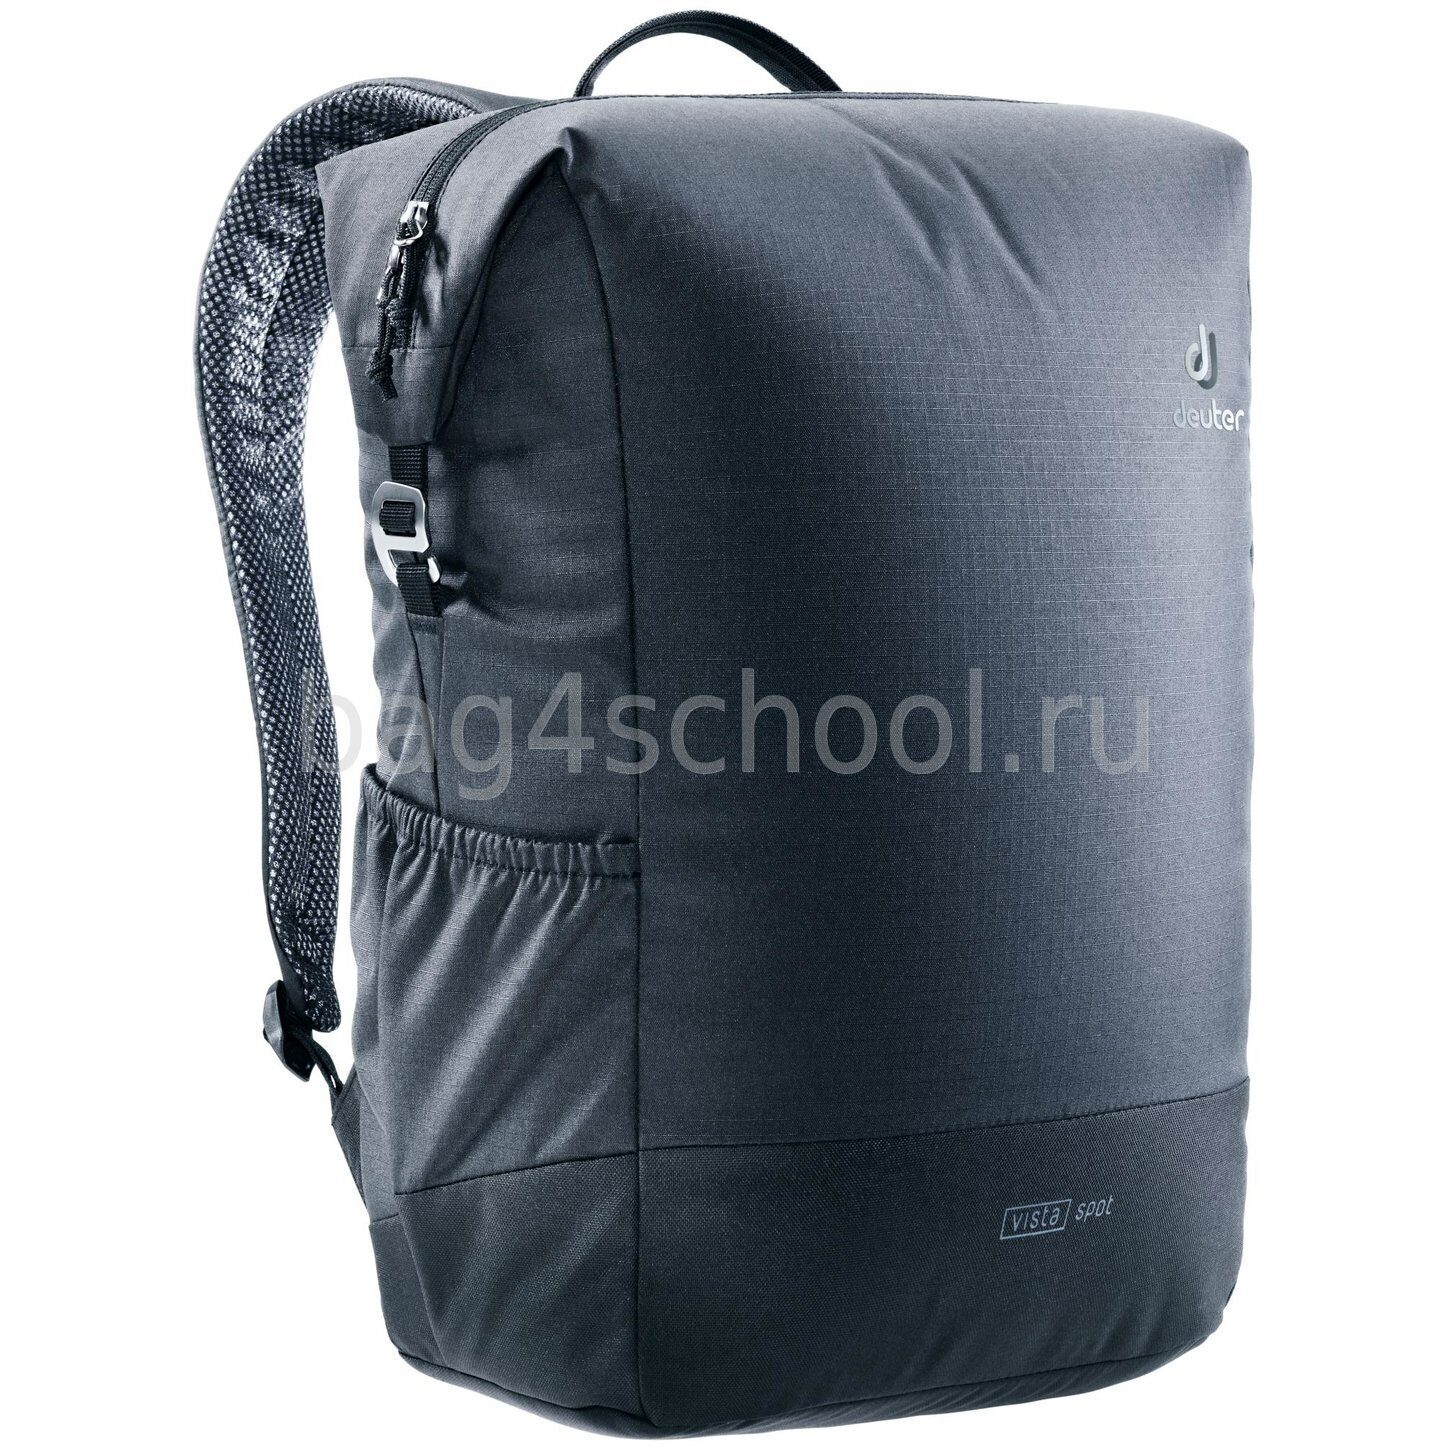 Рюкзак Deuter Vista Spot black 3811219-7000